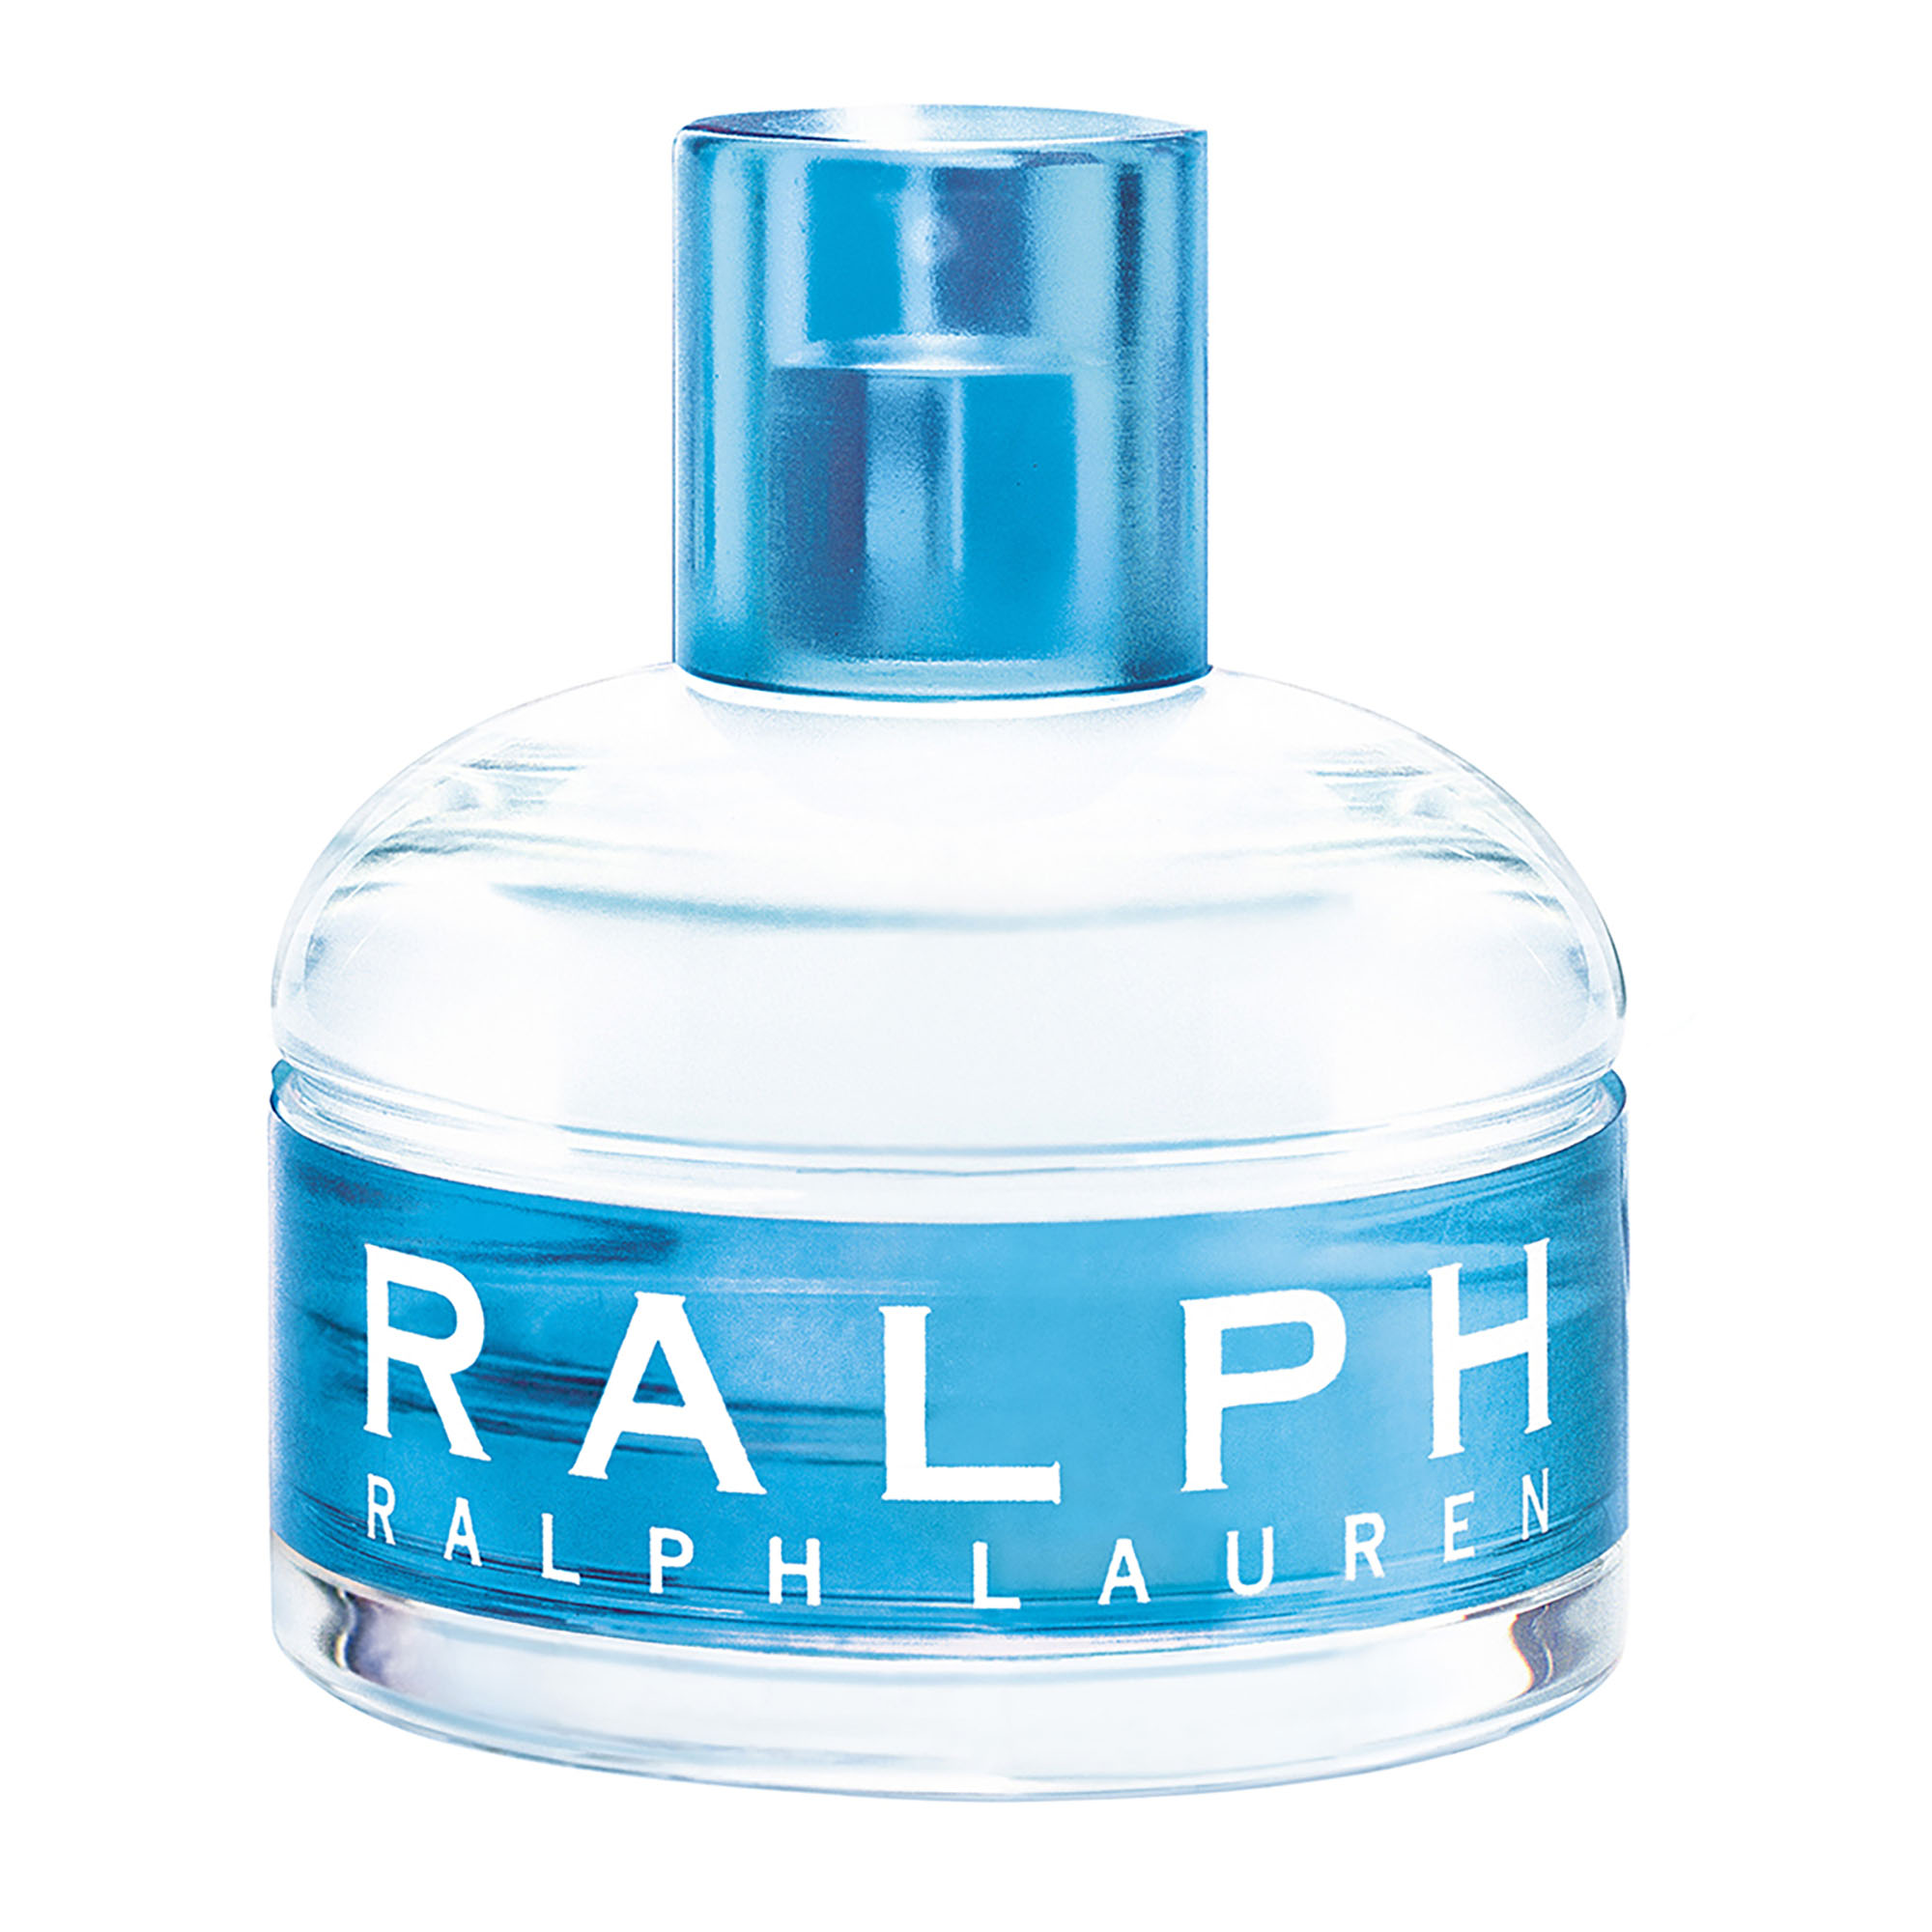 Ralph By Ralph Lauren, Eau de Toilette, Perfume for Women, 3.4 Oz